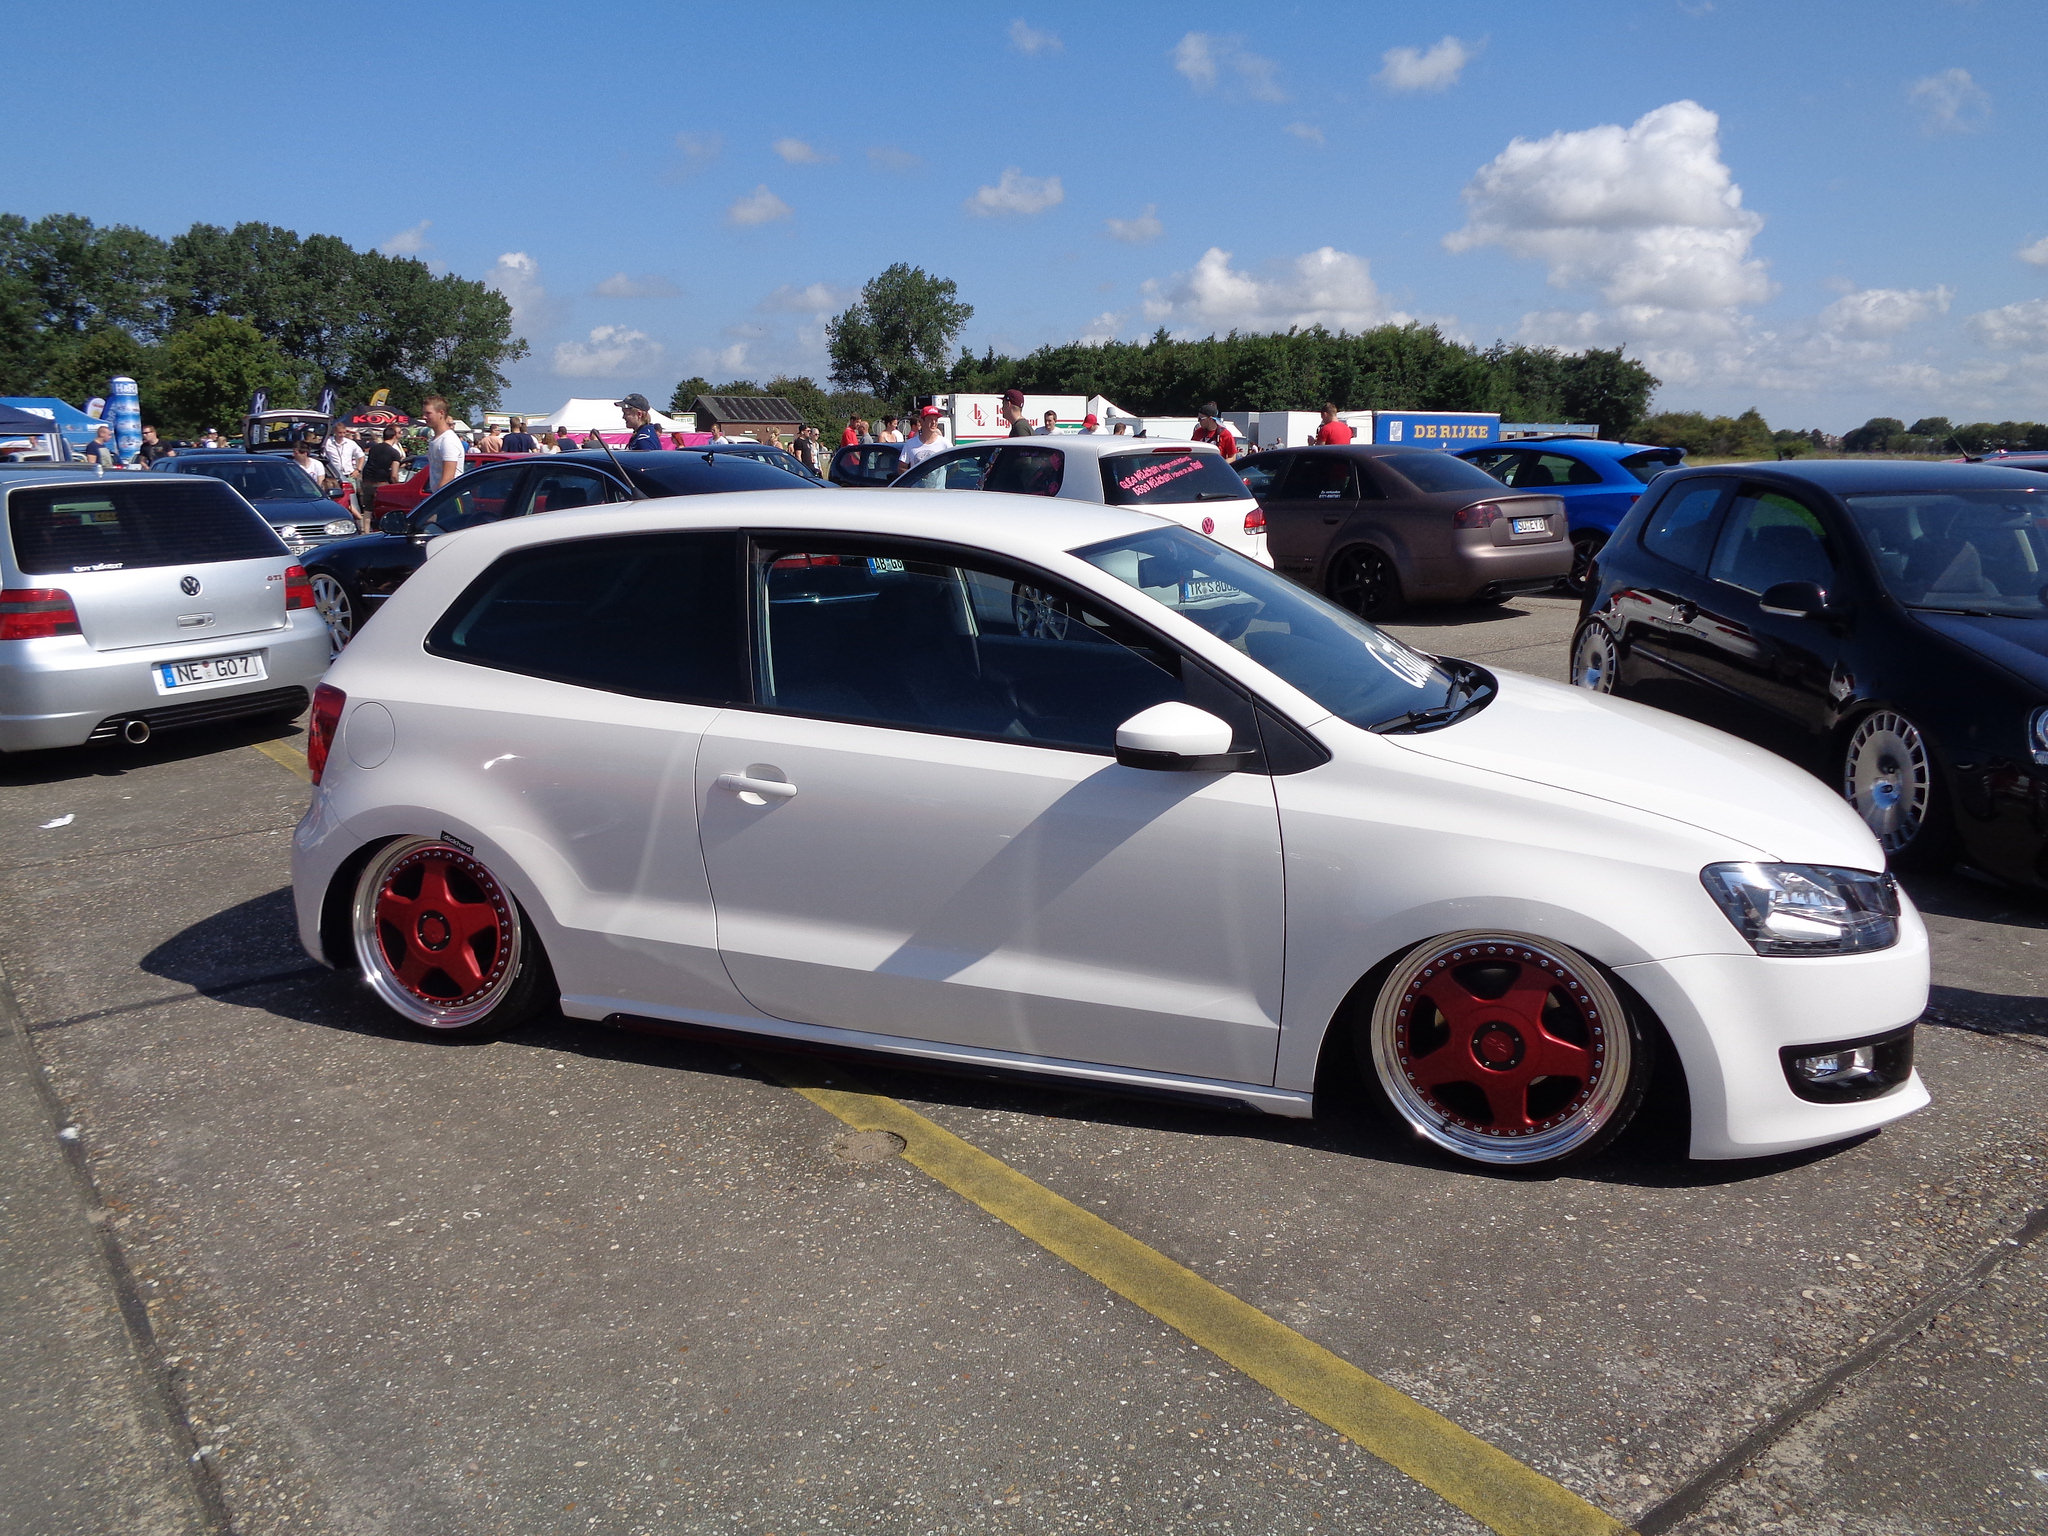 Vw polo tuning